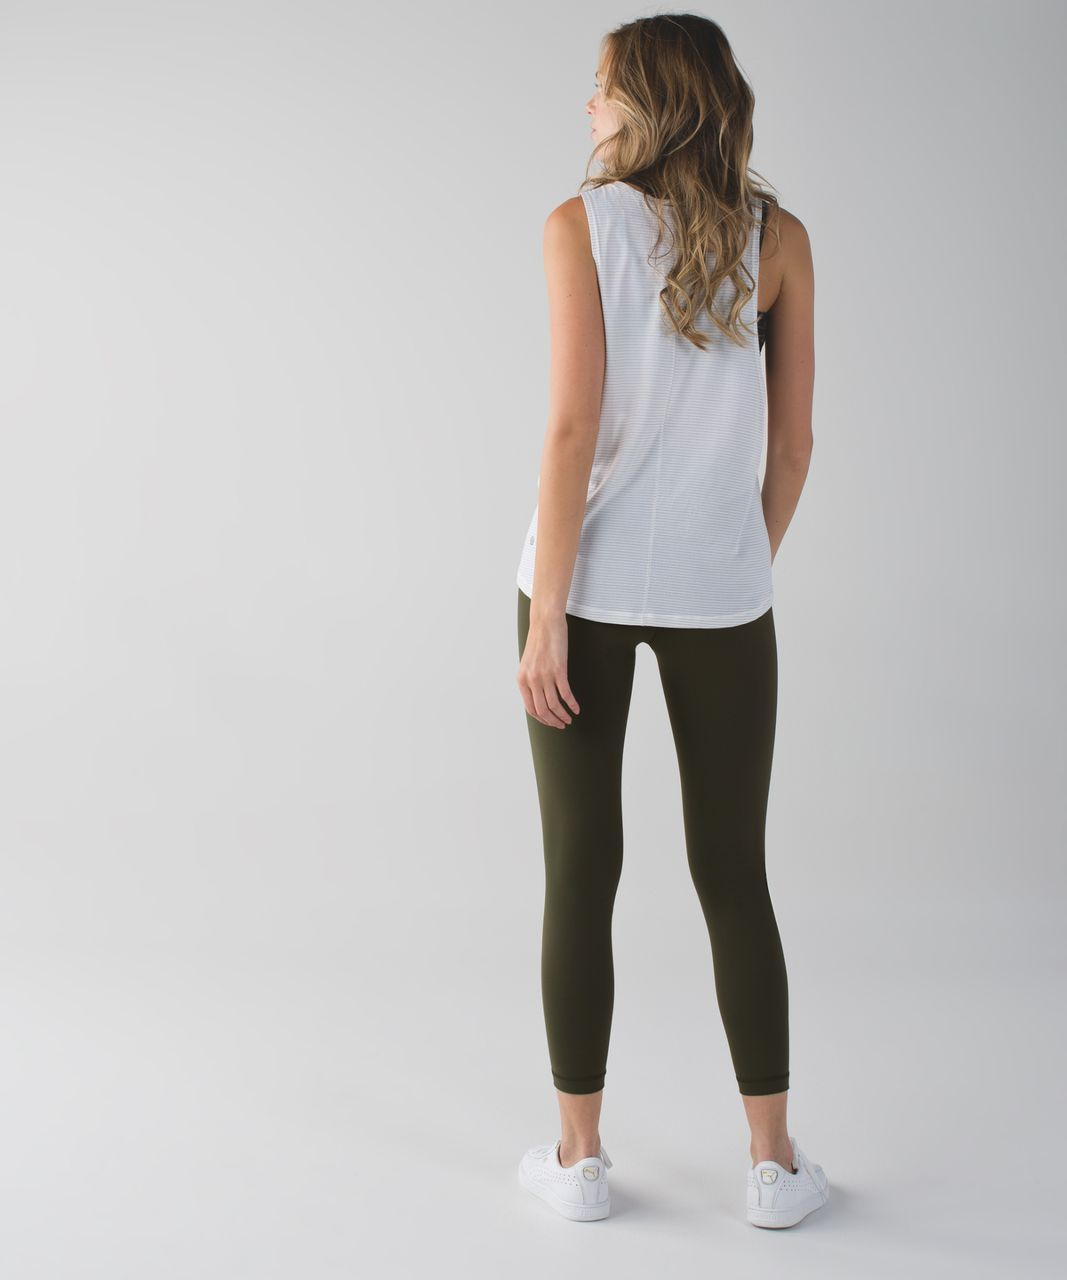 Lululemon High Times Pant - Fatigue Green